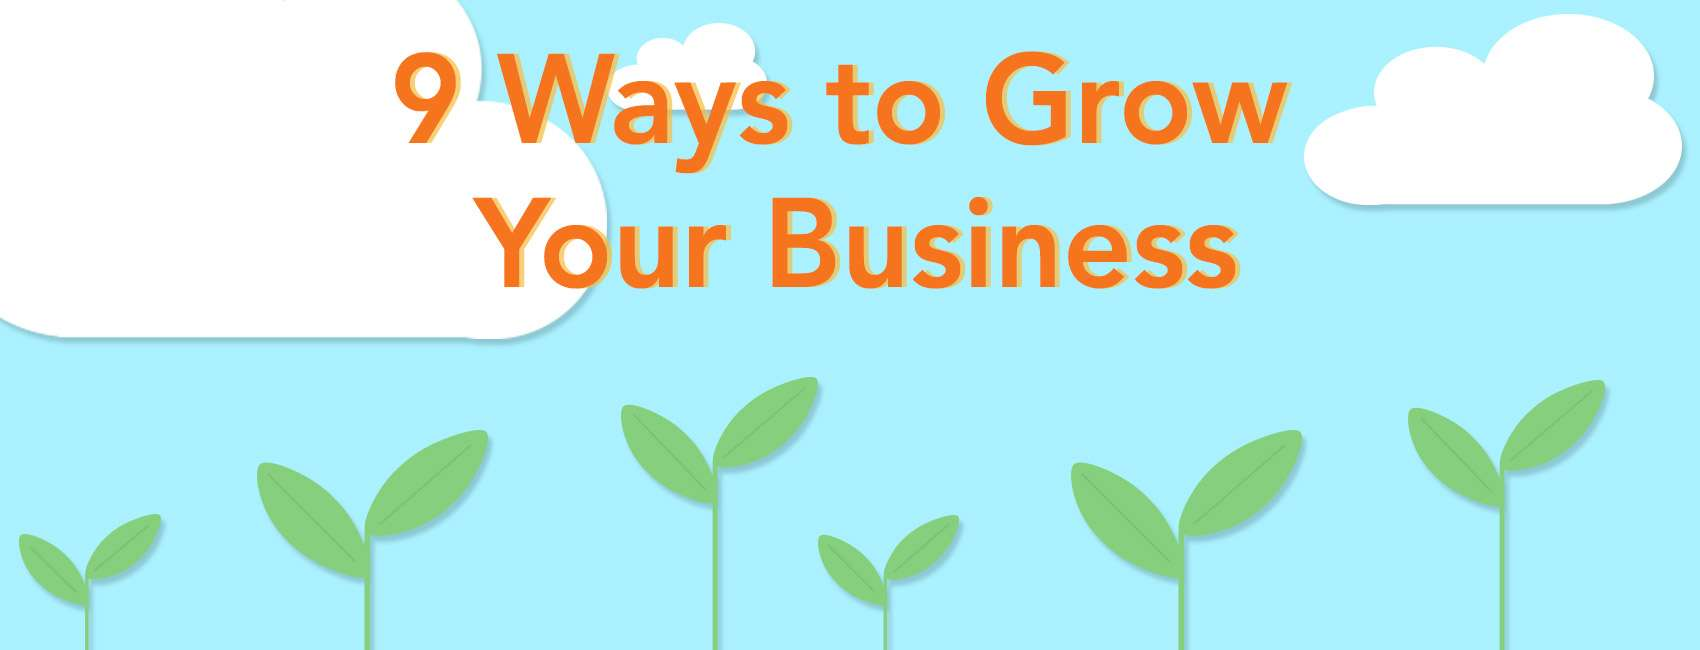 9 Ways to Grow Your Business